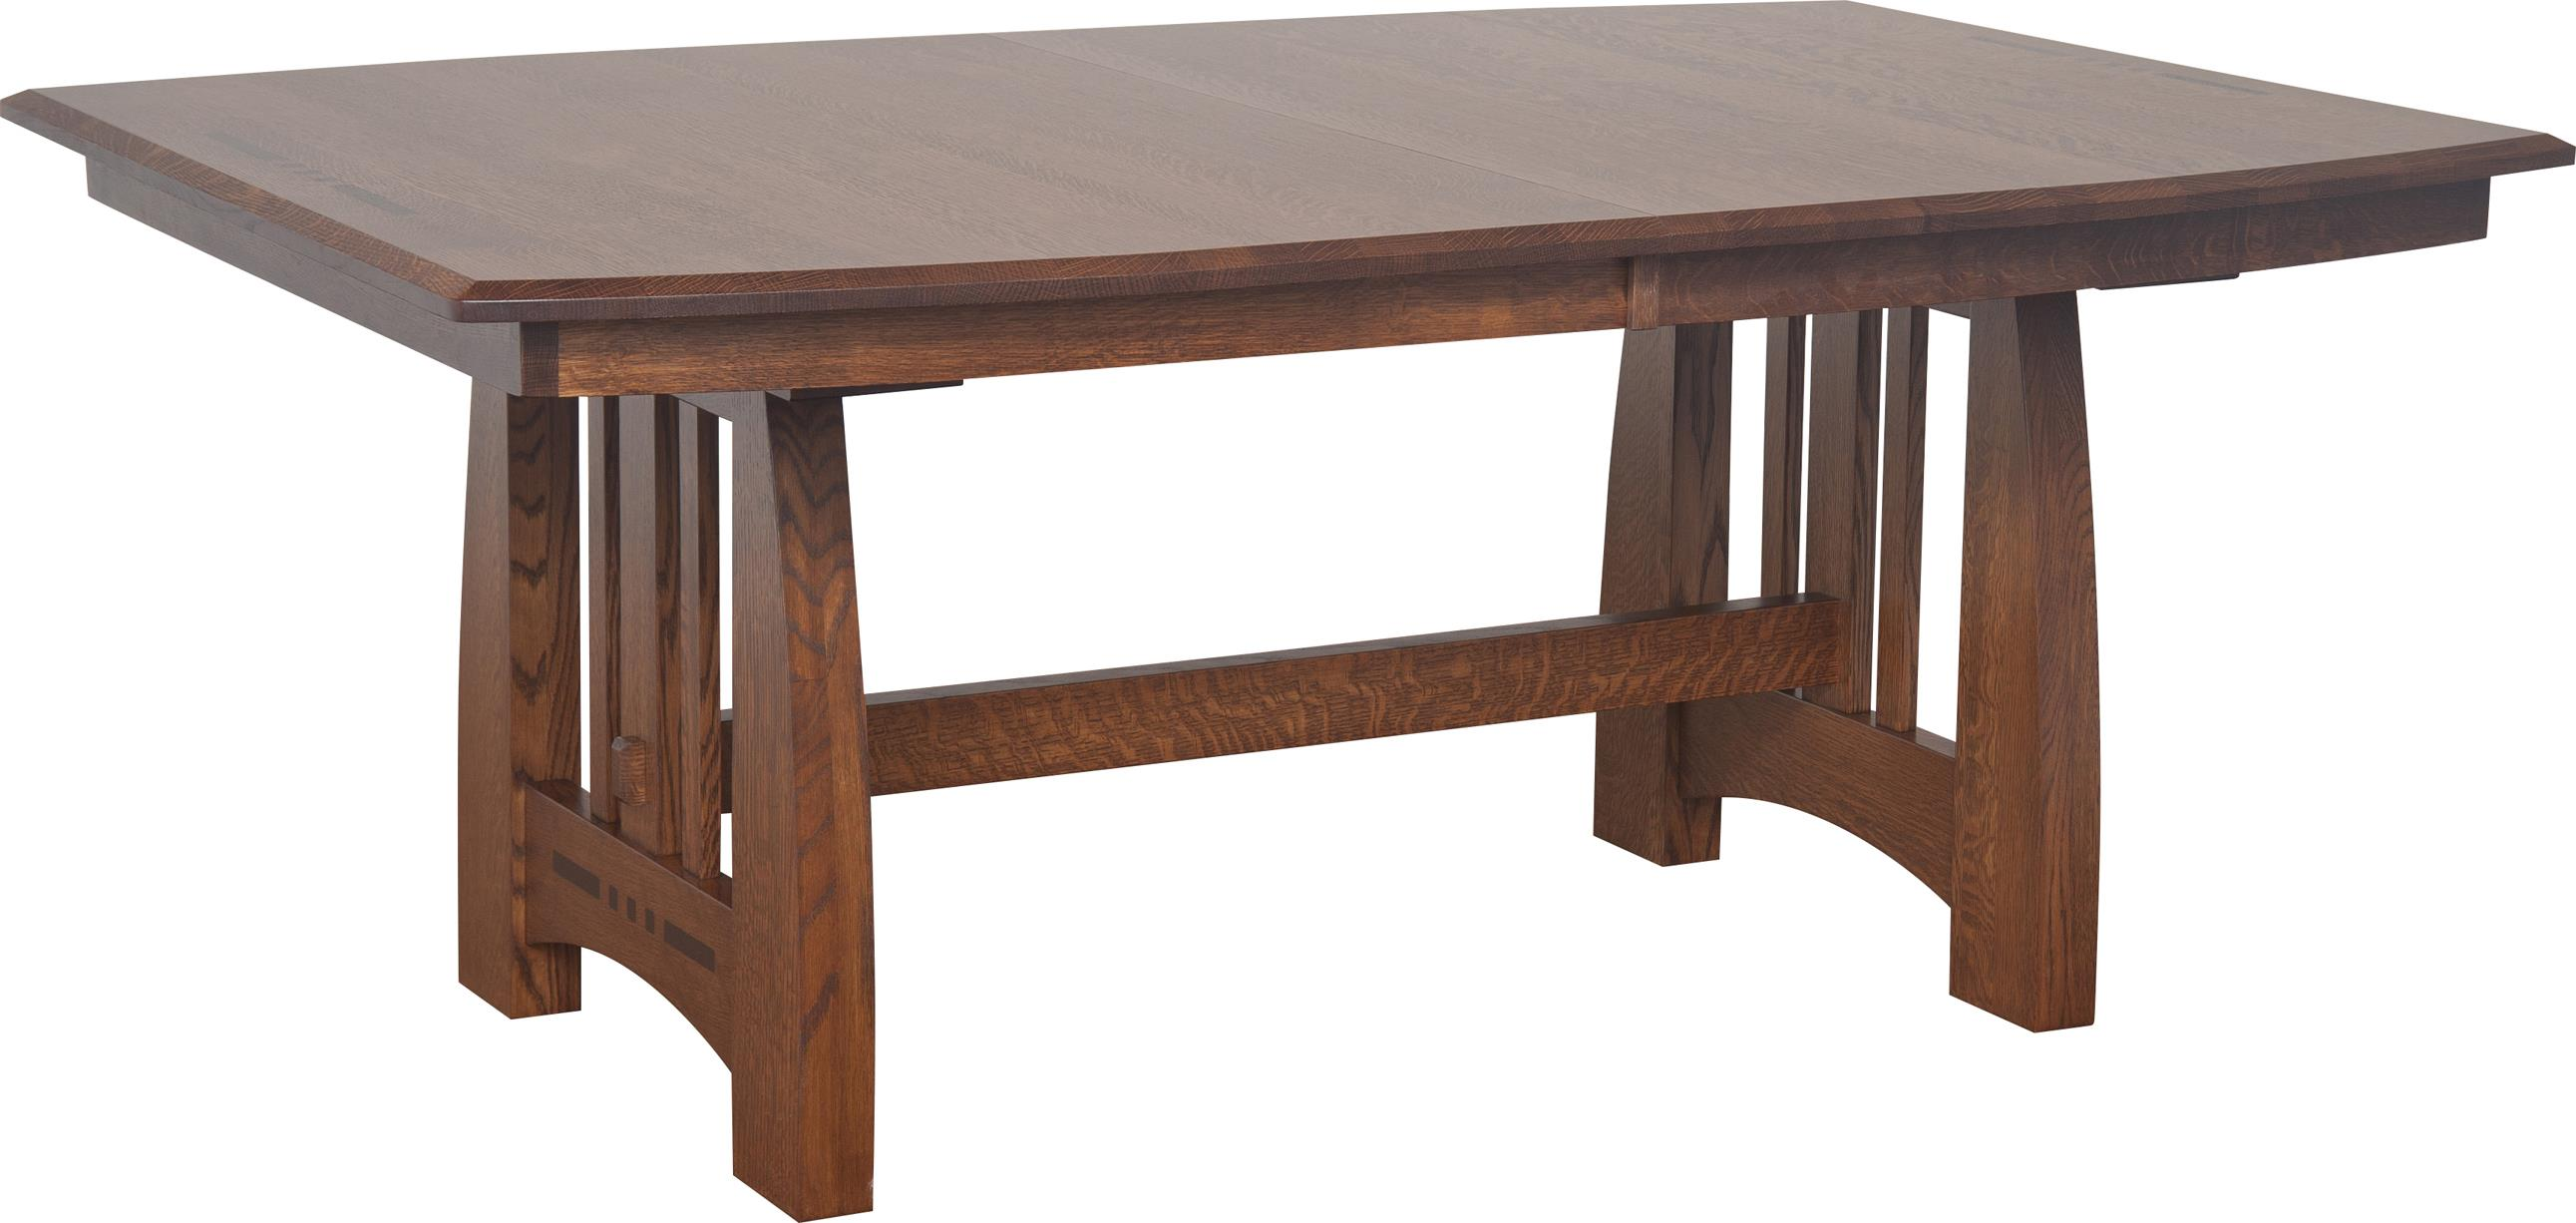 Incredible Owen Amish Dining Table With Two 12 Leaves By Indiana Amish At Walkers Furniture Home Interior And Landscaping Ologienasavecom